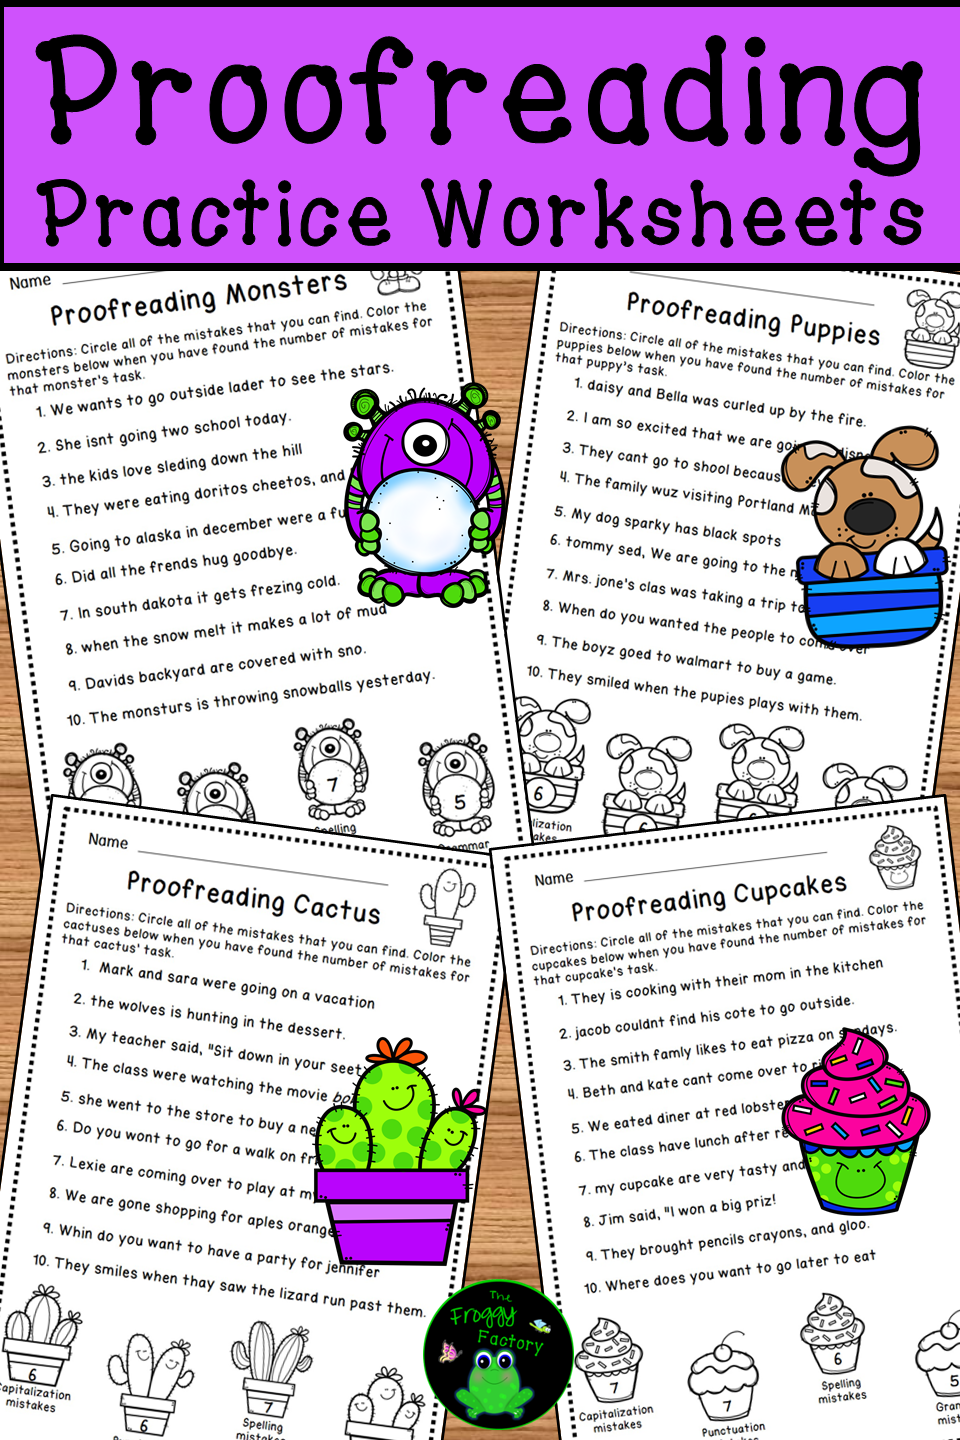 Proofreading Practice Worksheets Elementary Writing Editing Practice Practices Worksheets [ 1440 x 960 Pixel ]